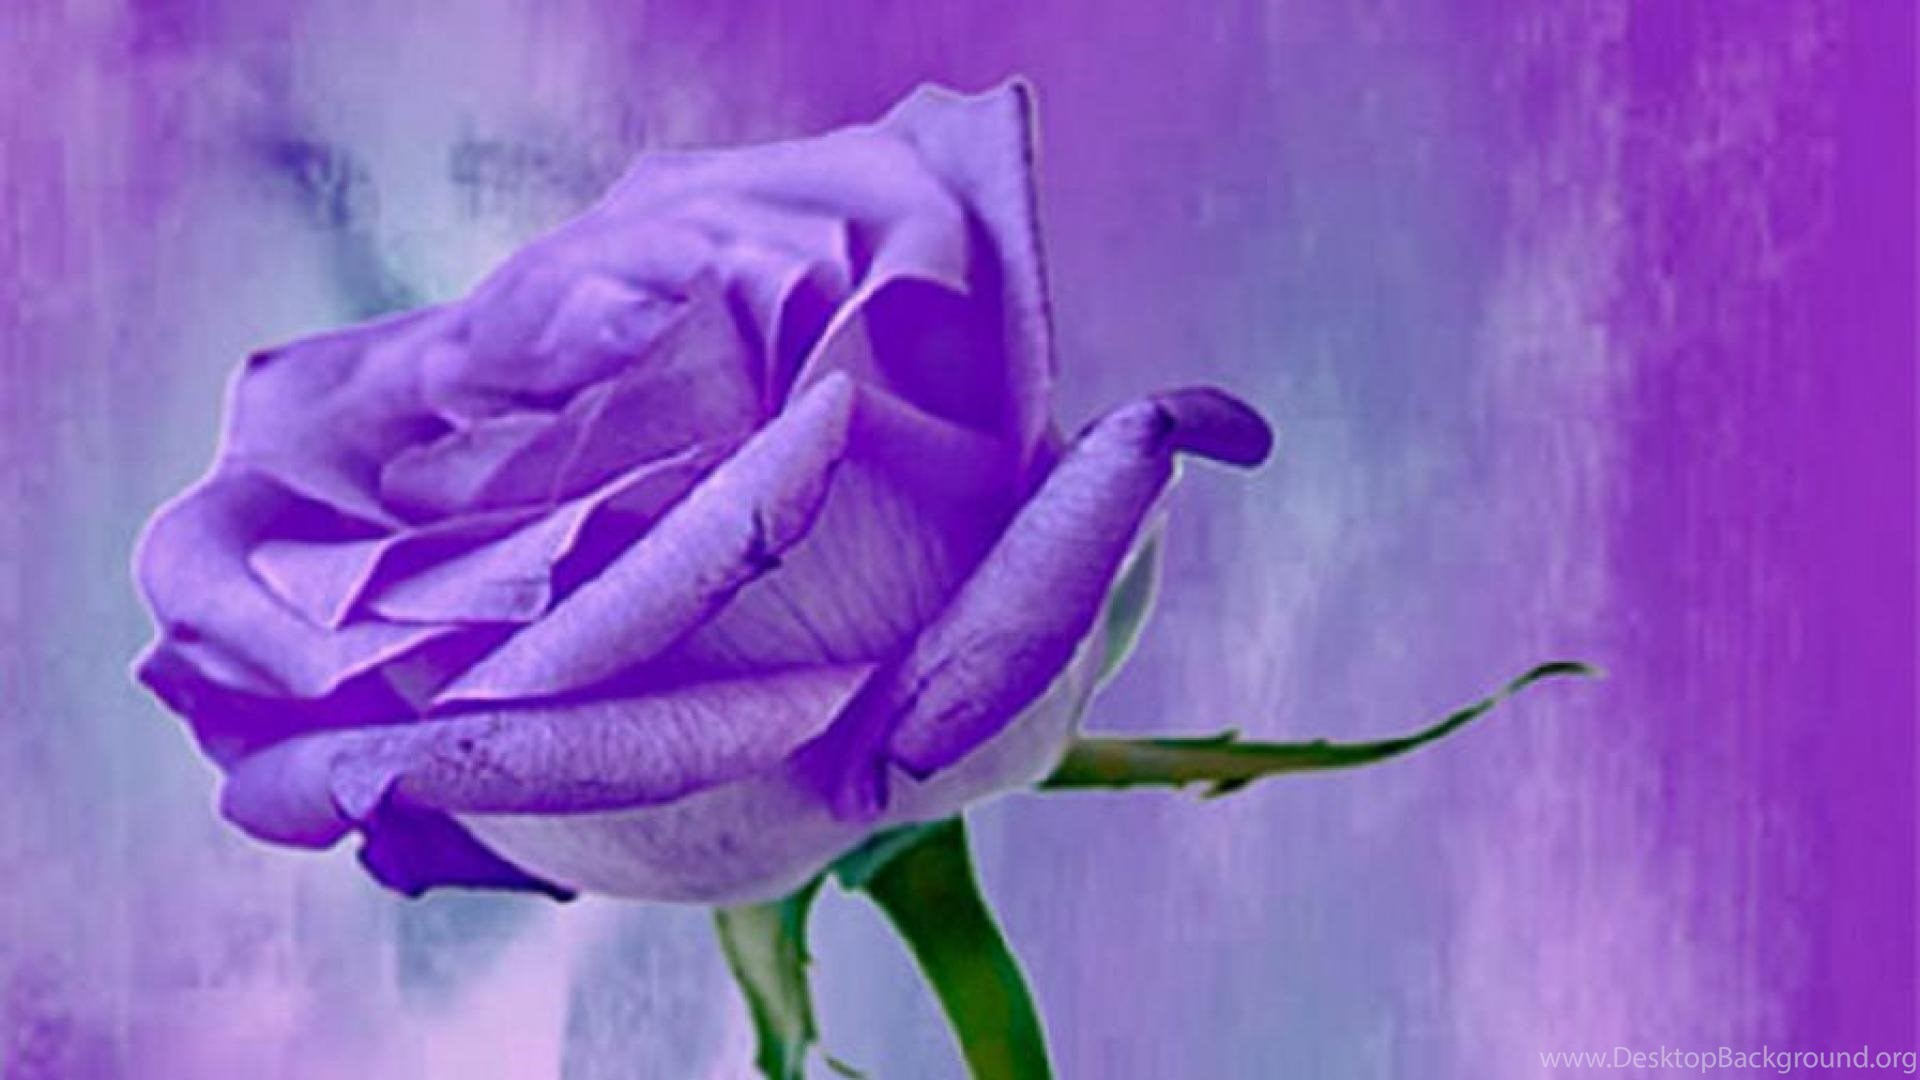 PURPLE ROSE WALLPAPER Desktop Background